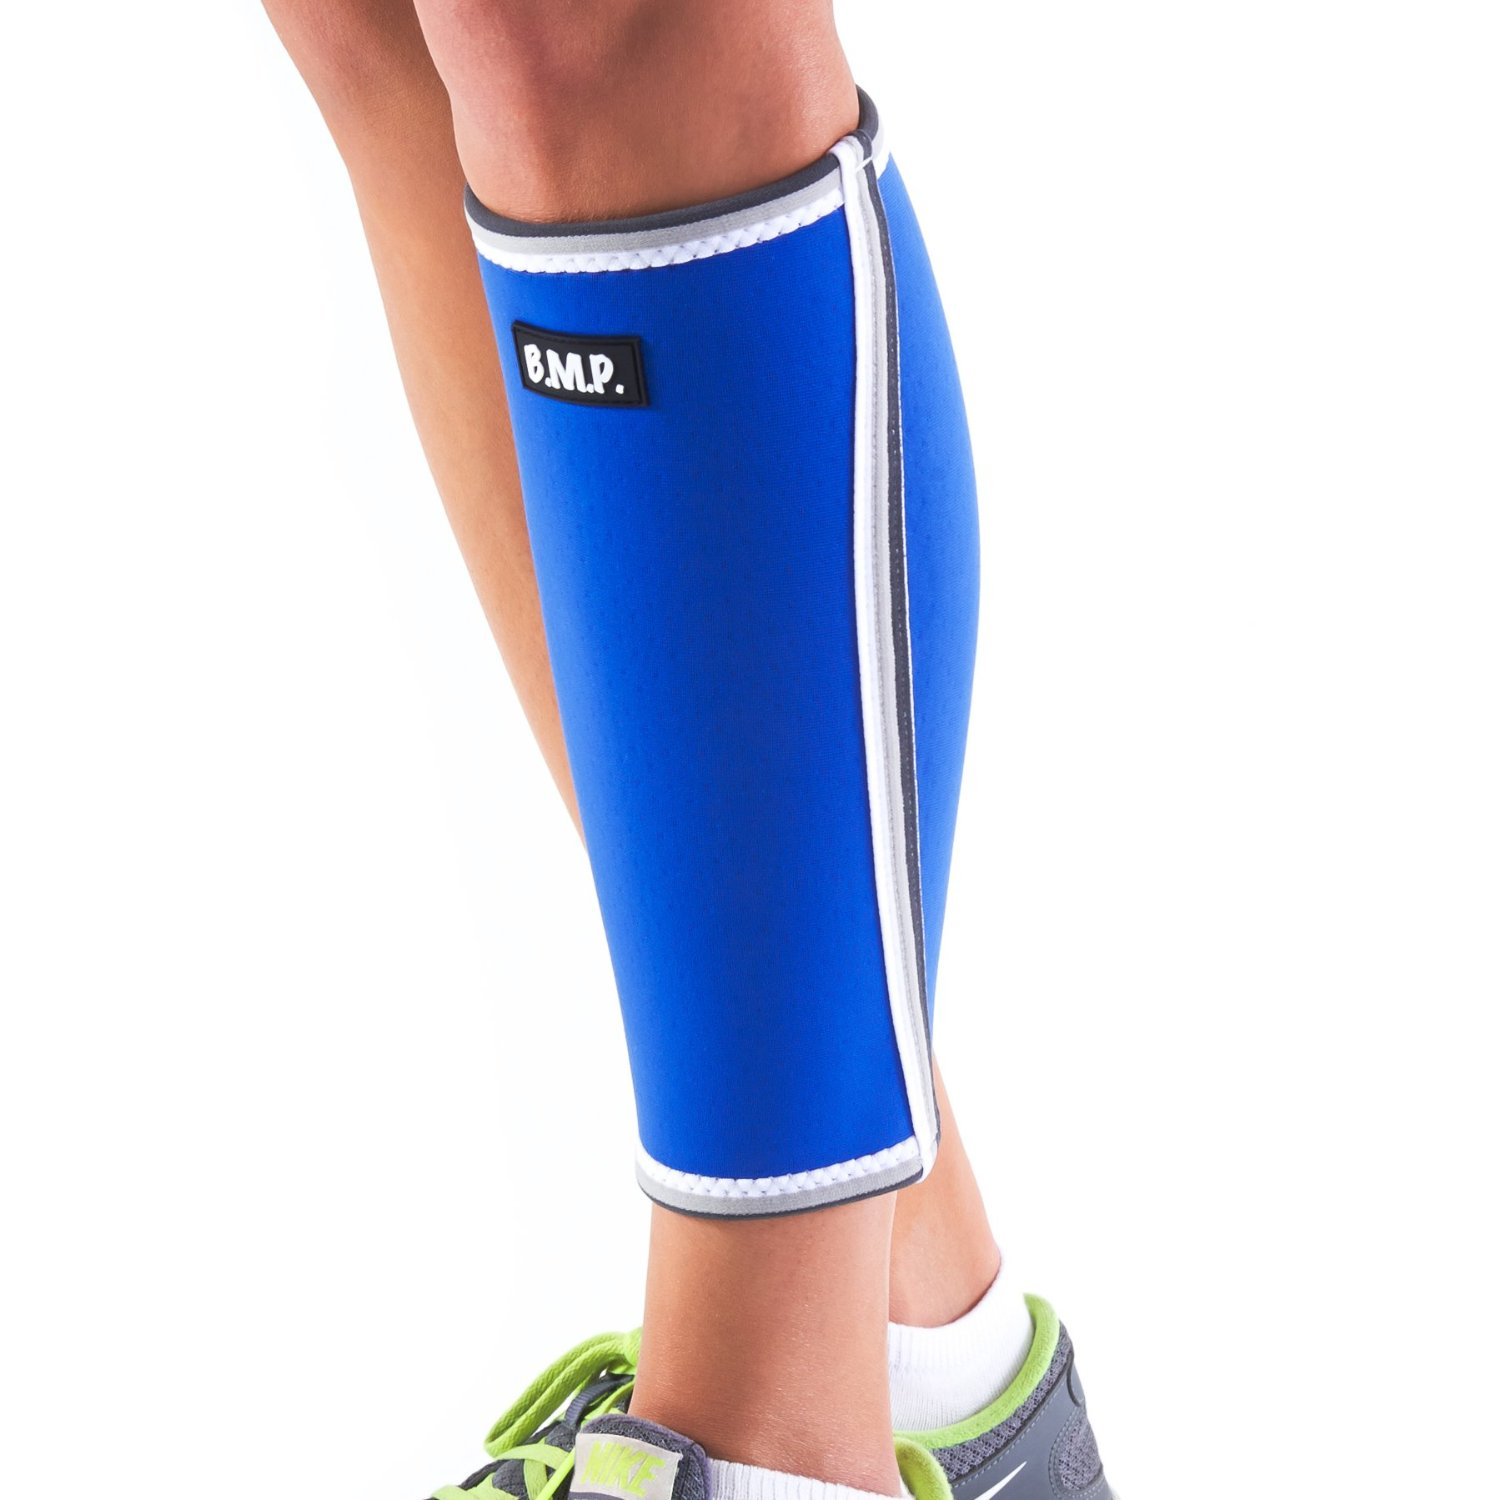 ddc2a9af8a0 Calf Compression Sleeve - Therapeutic Warming Sensation - Extra Thick